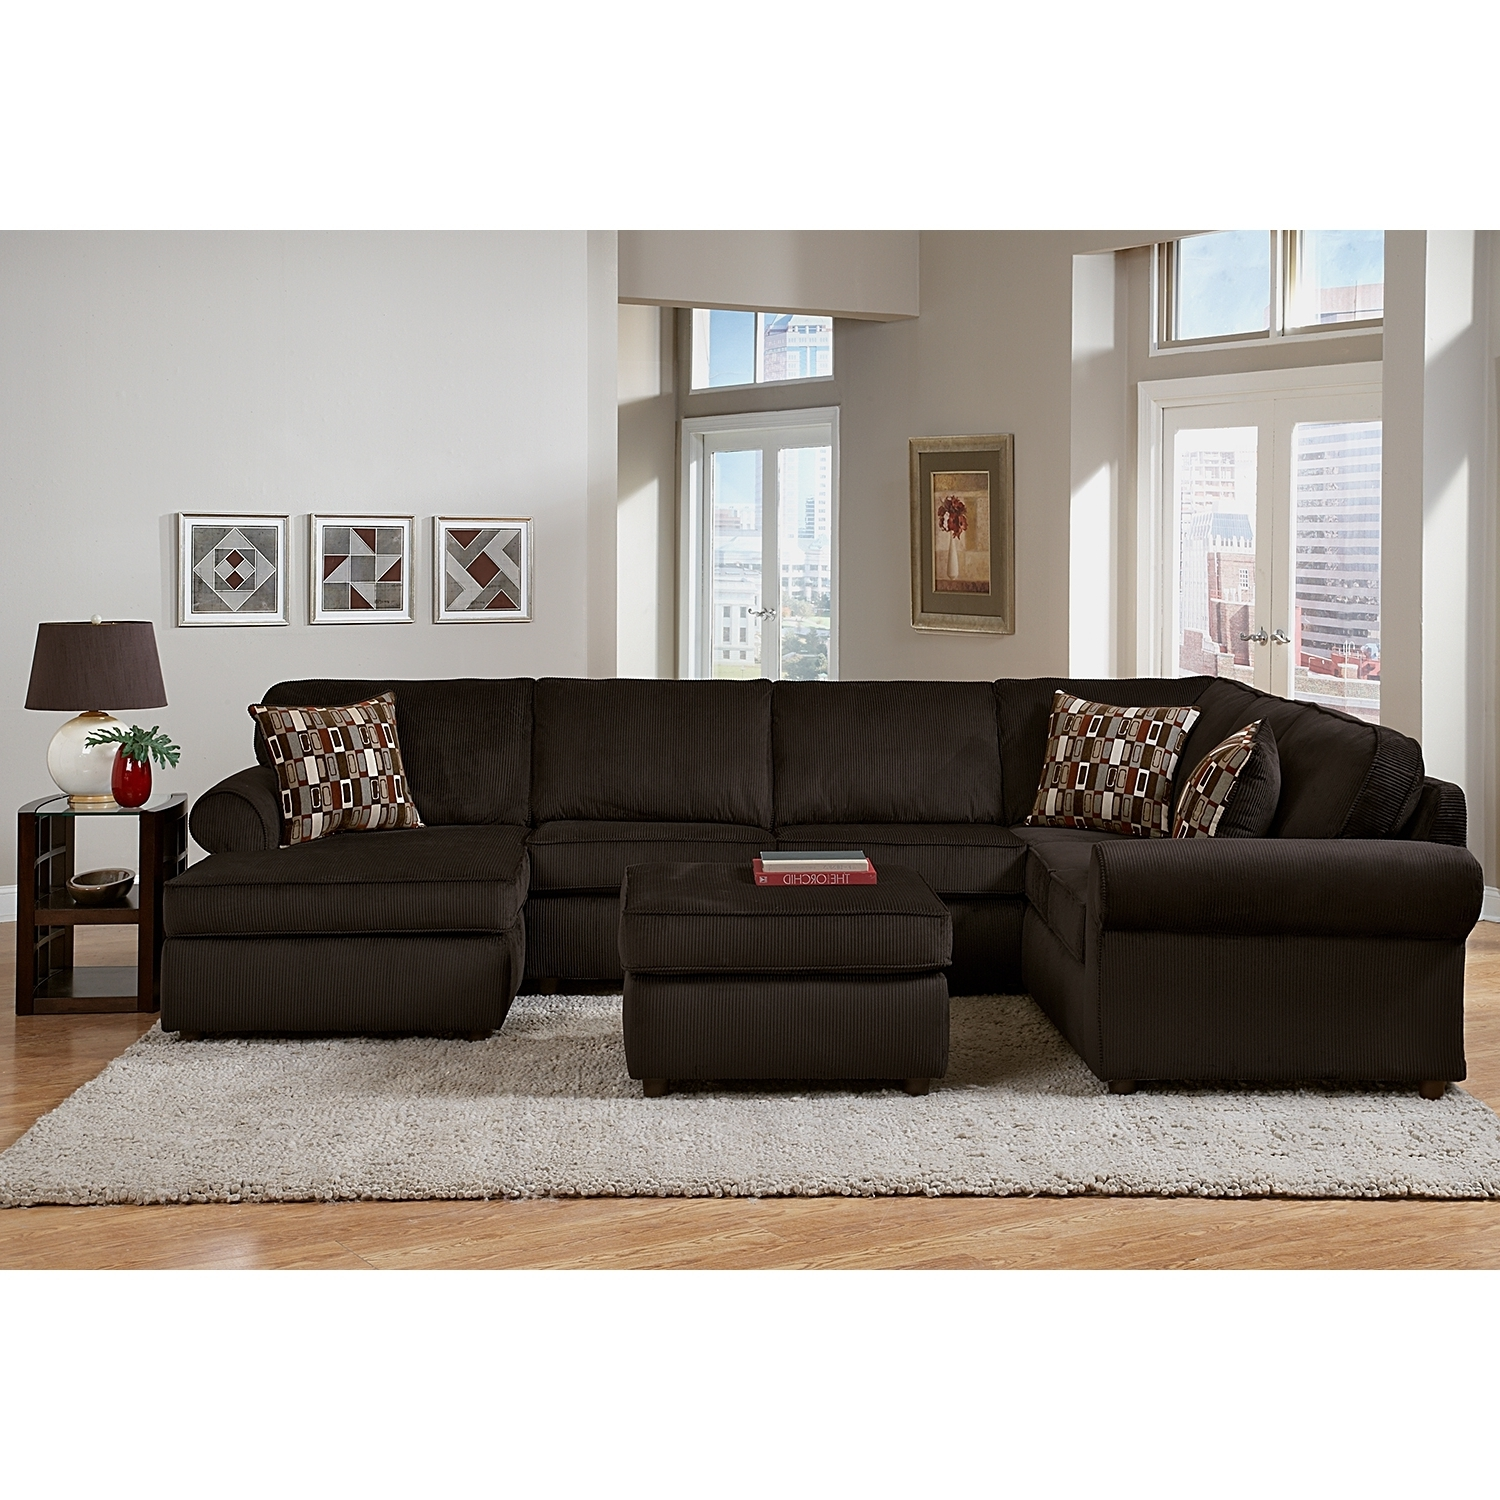 Picture 5 Of 34 – Sectional Sofas Sale Luxury Stunning Value City For 2019 Wichita Ks Sectional Sofas (View 13 of 20)